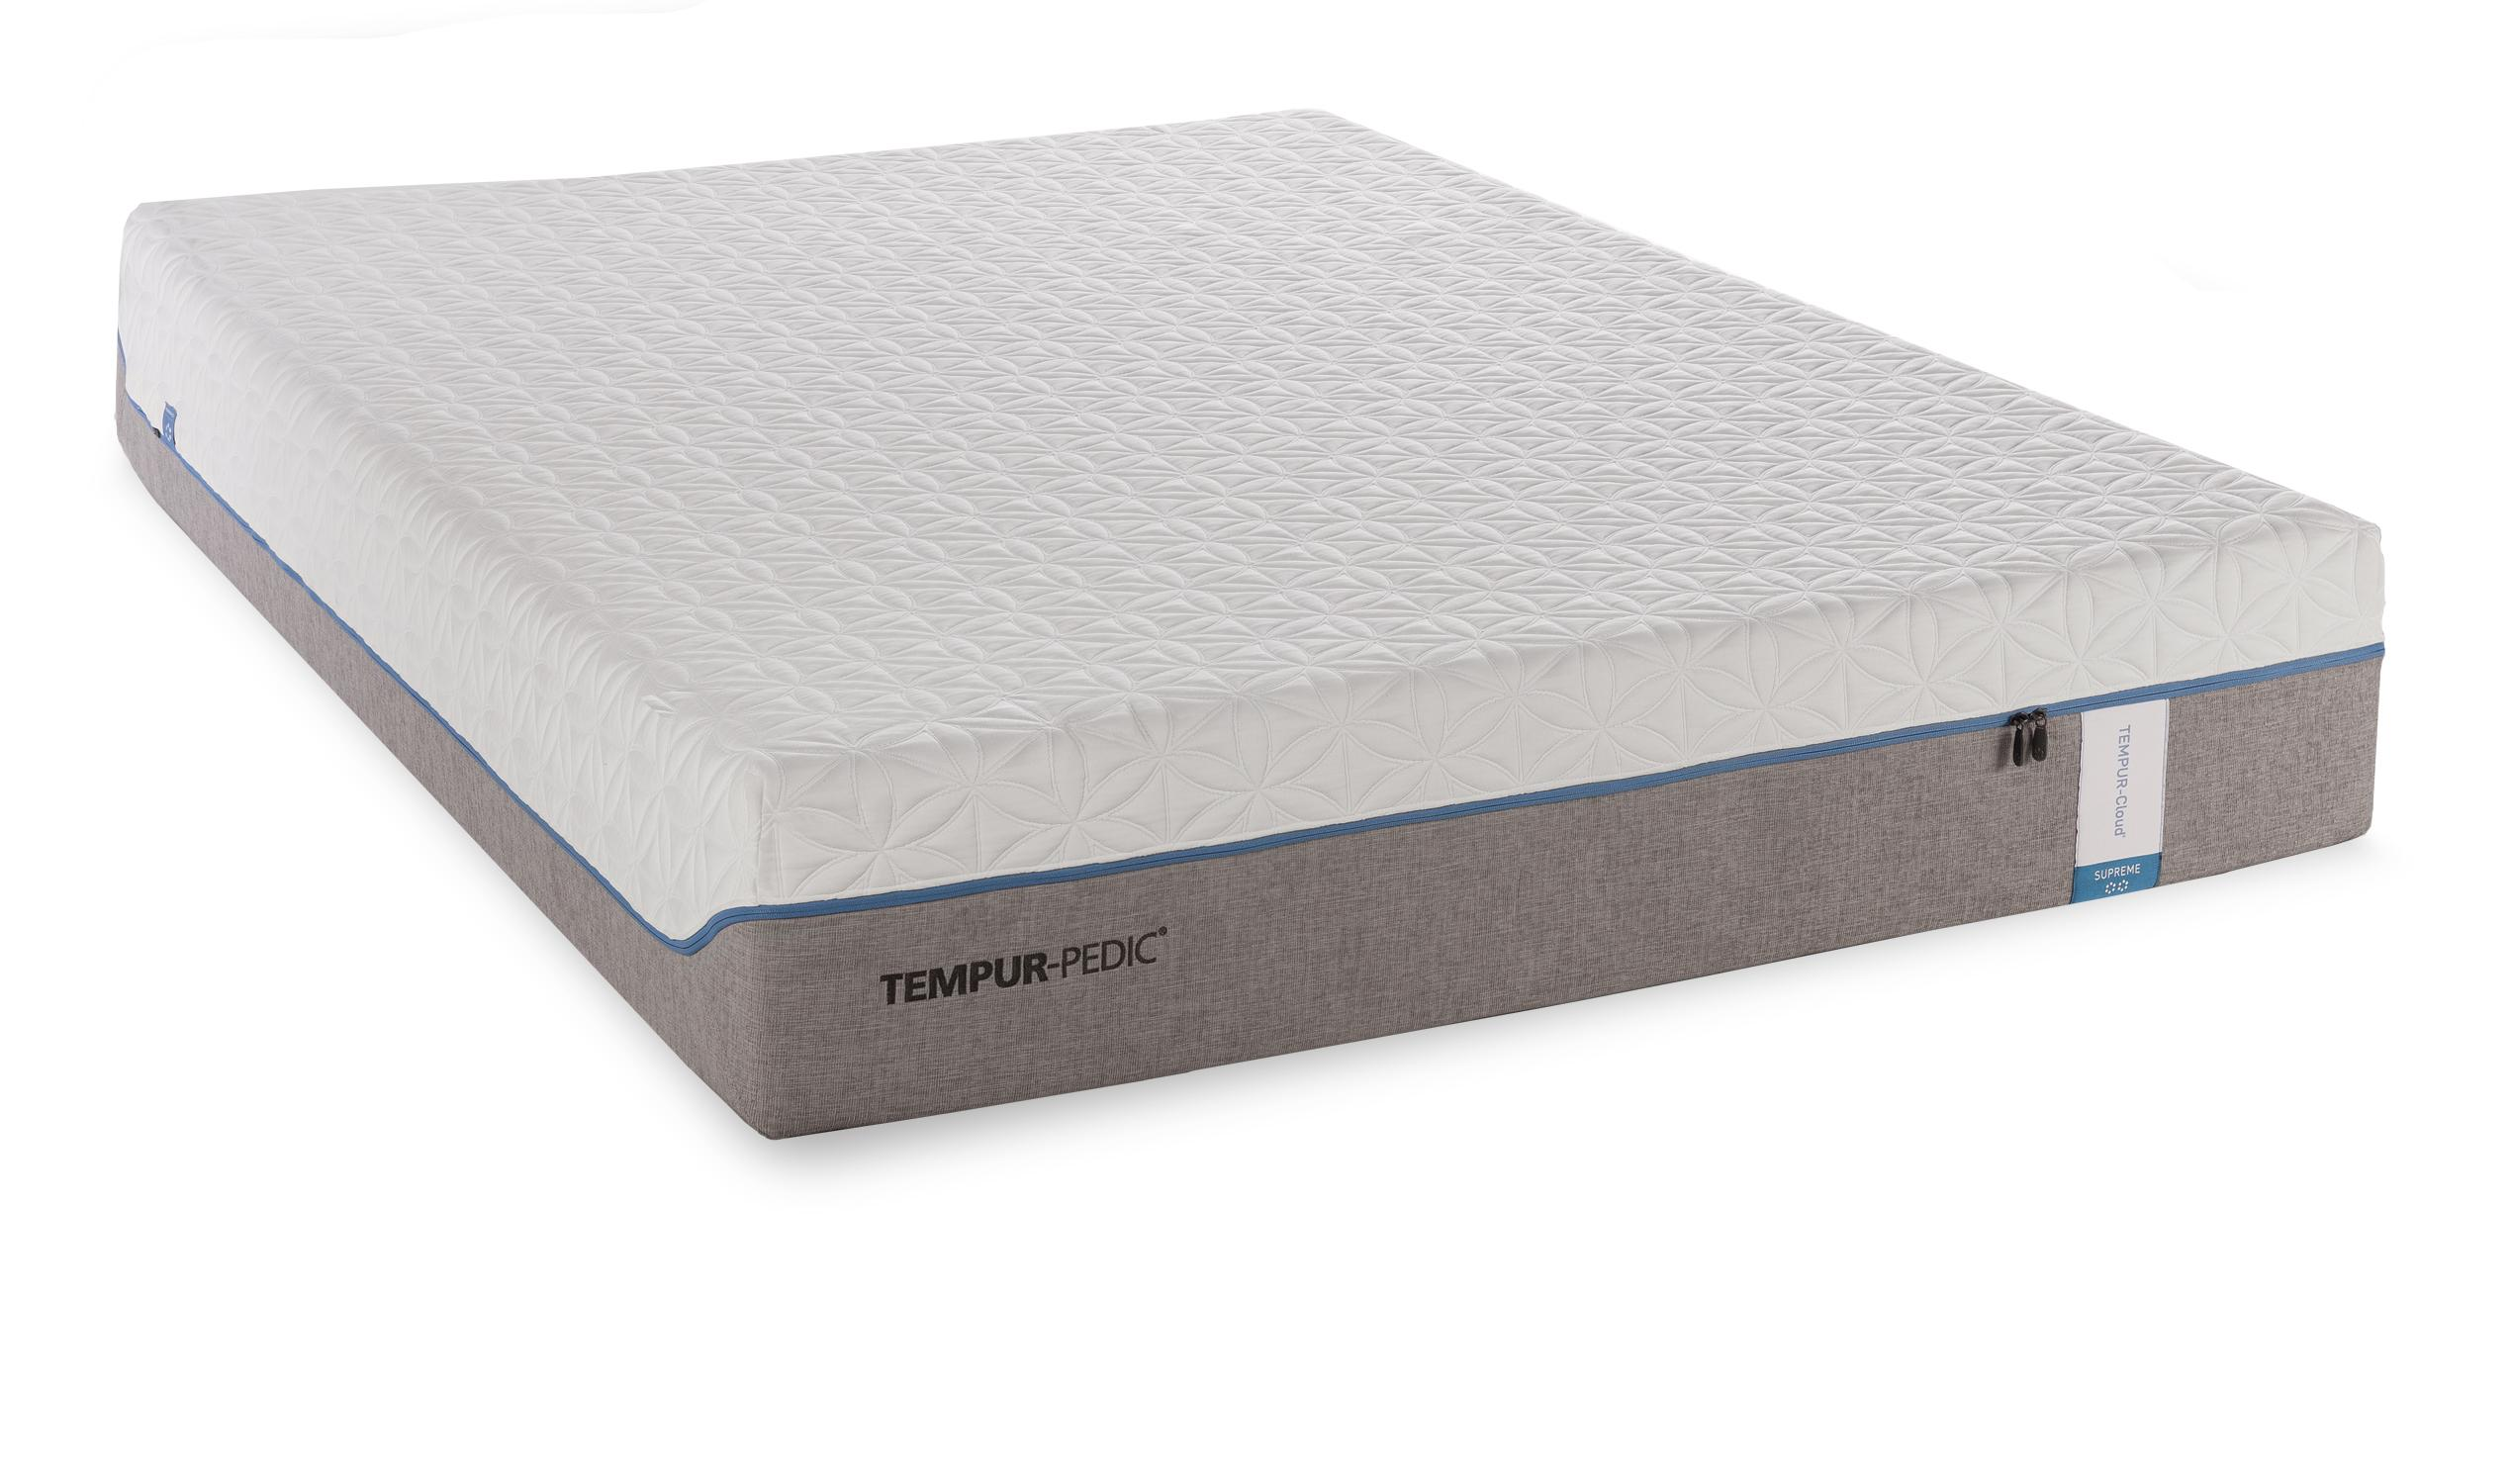 Tempur-Pedic® TEMPUR-Cloud Supreme Split Cal King Soft Mattress - Item Number: 10240290